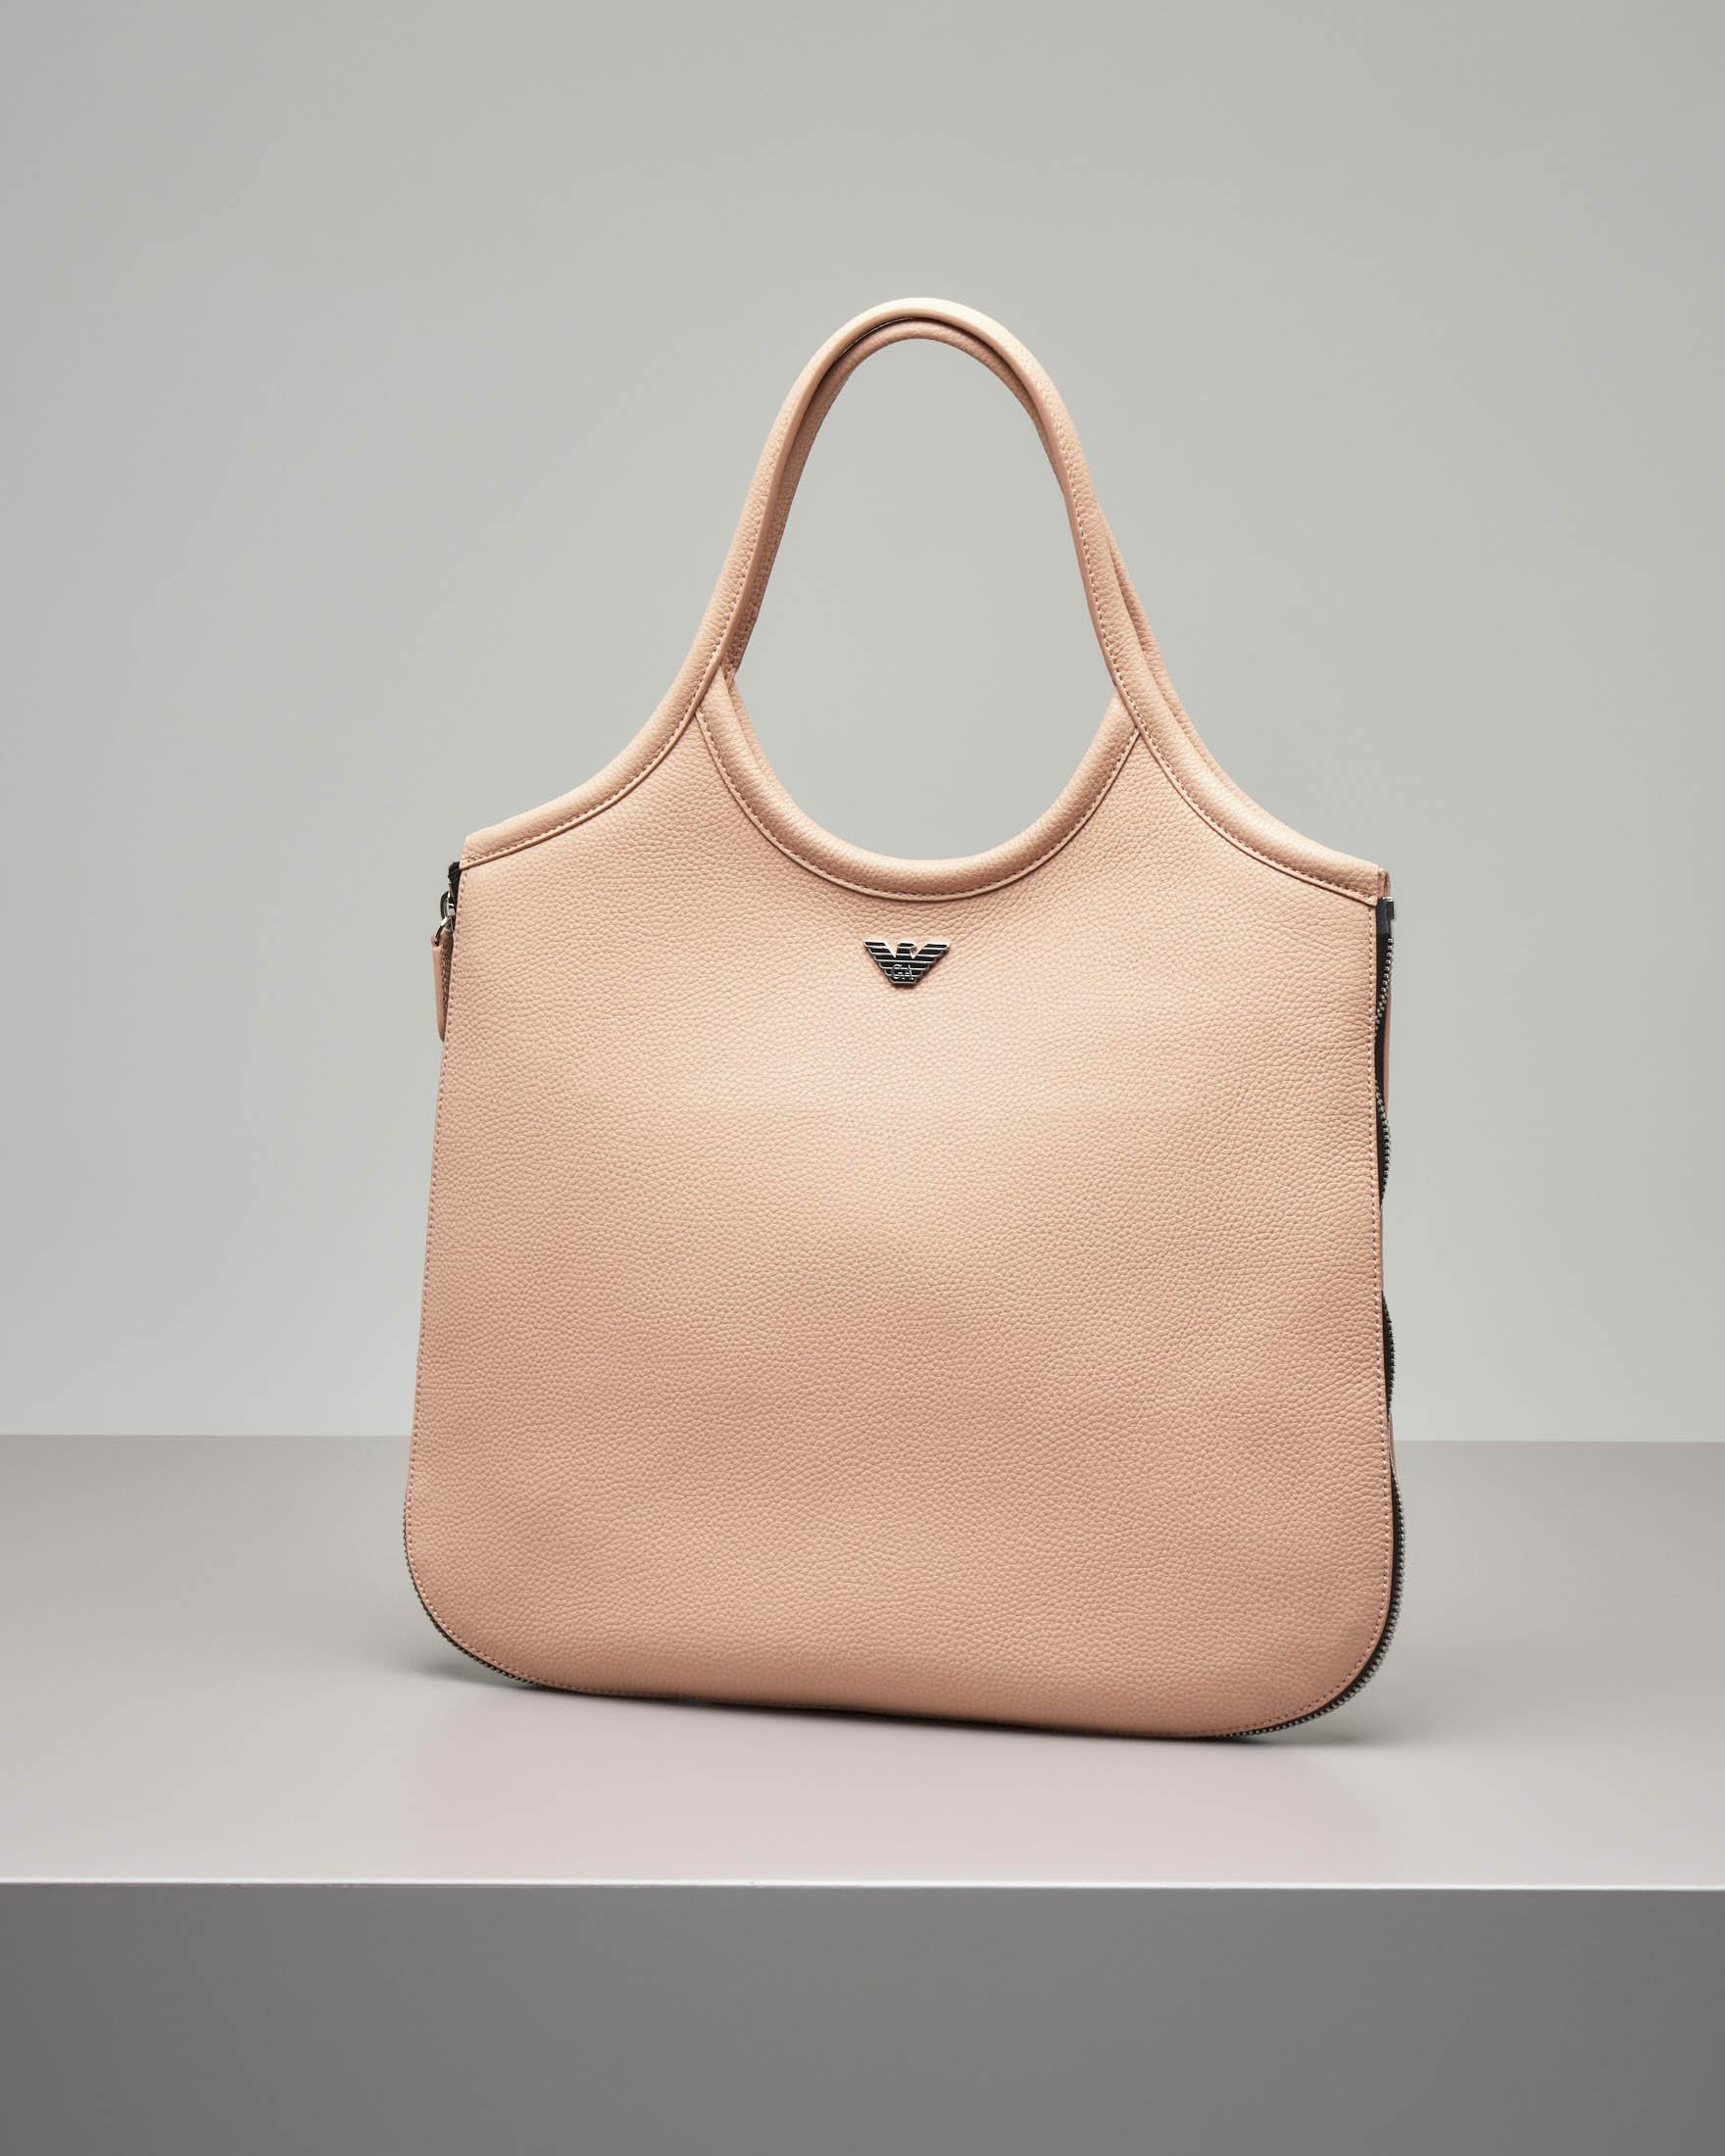 Borsa hobo in pelle color rosa